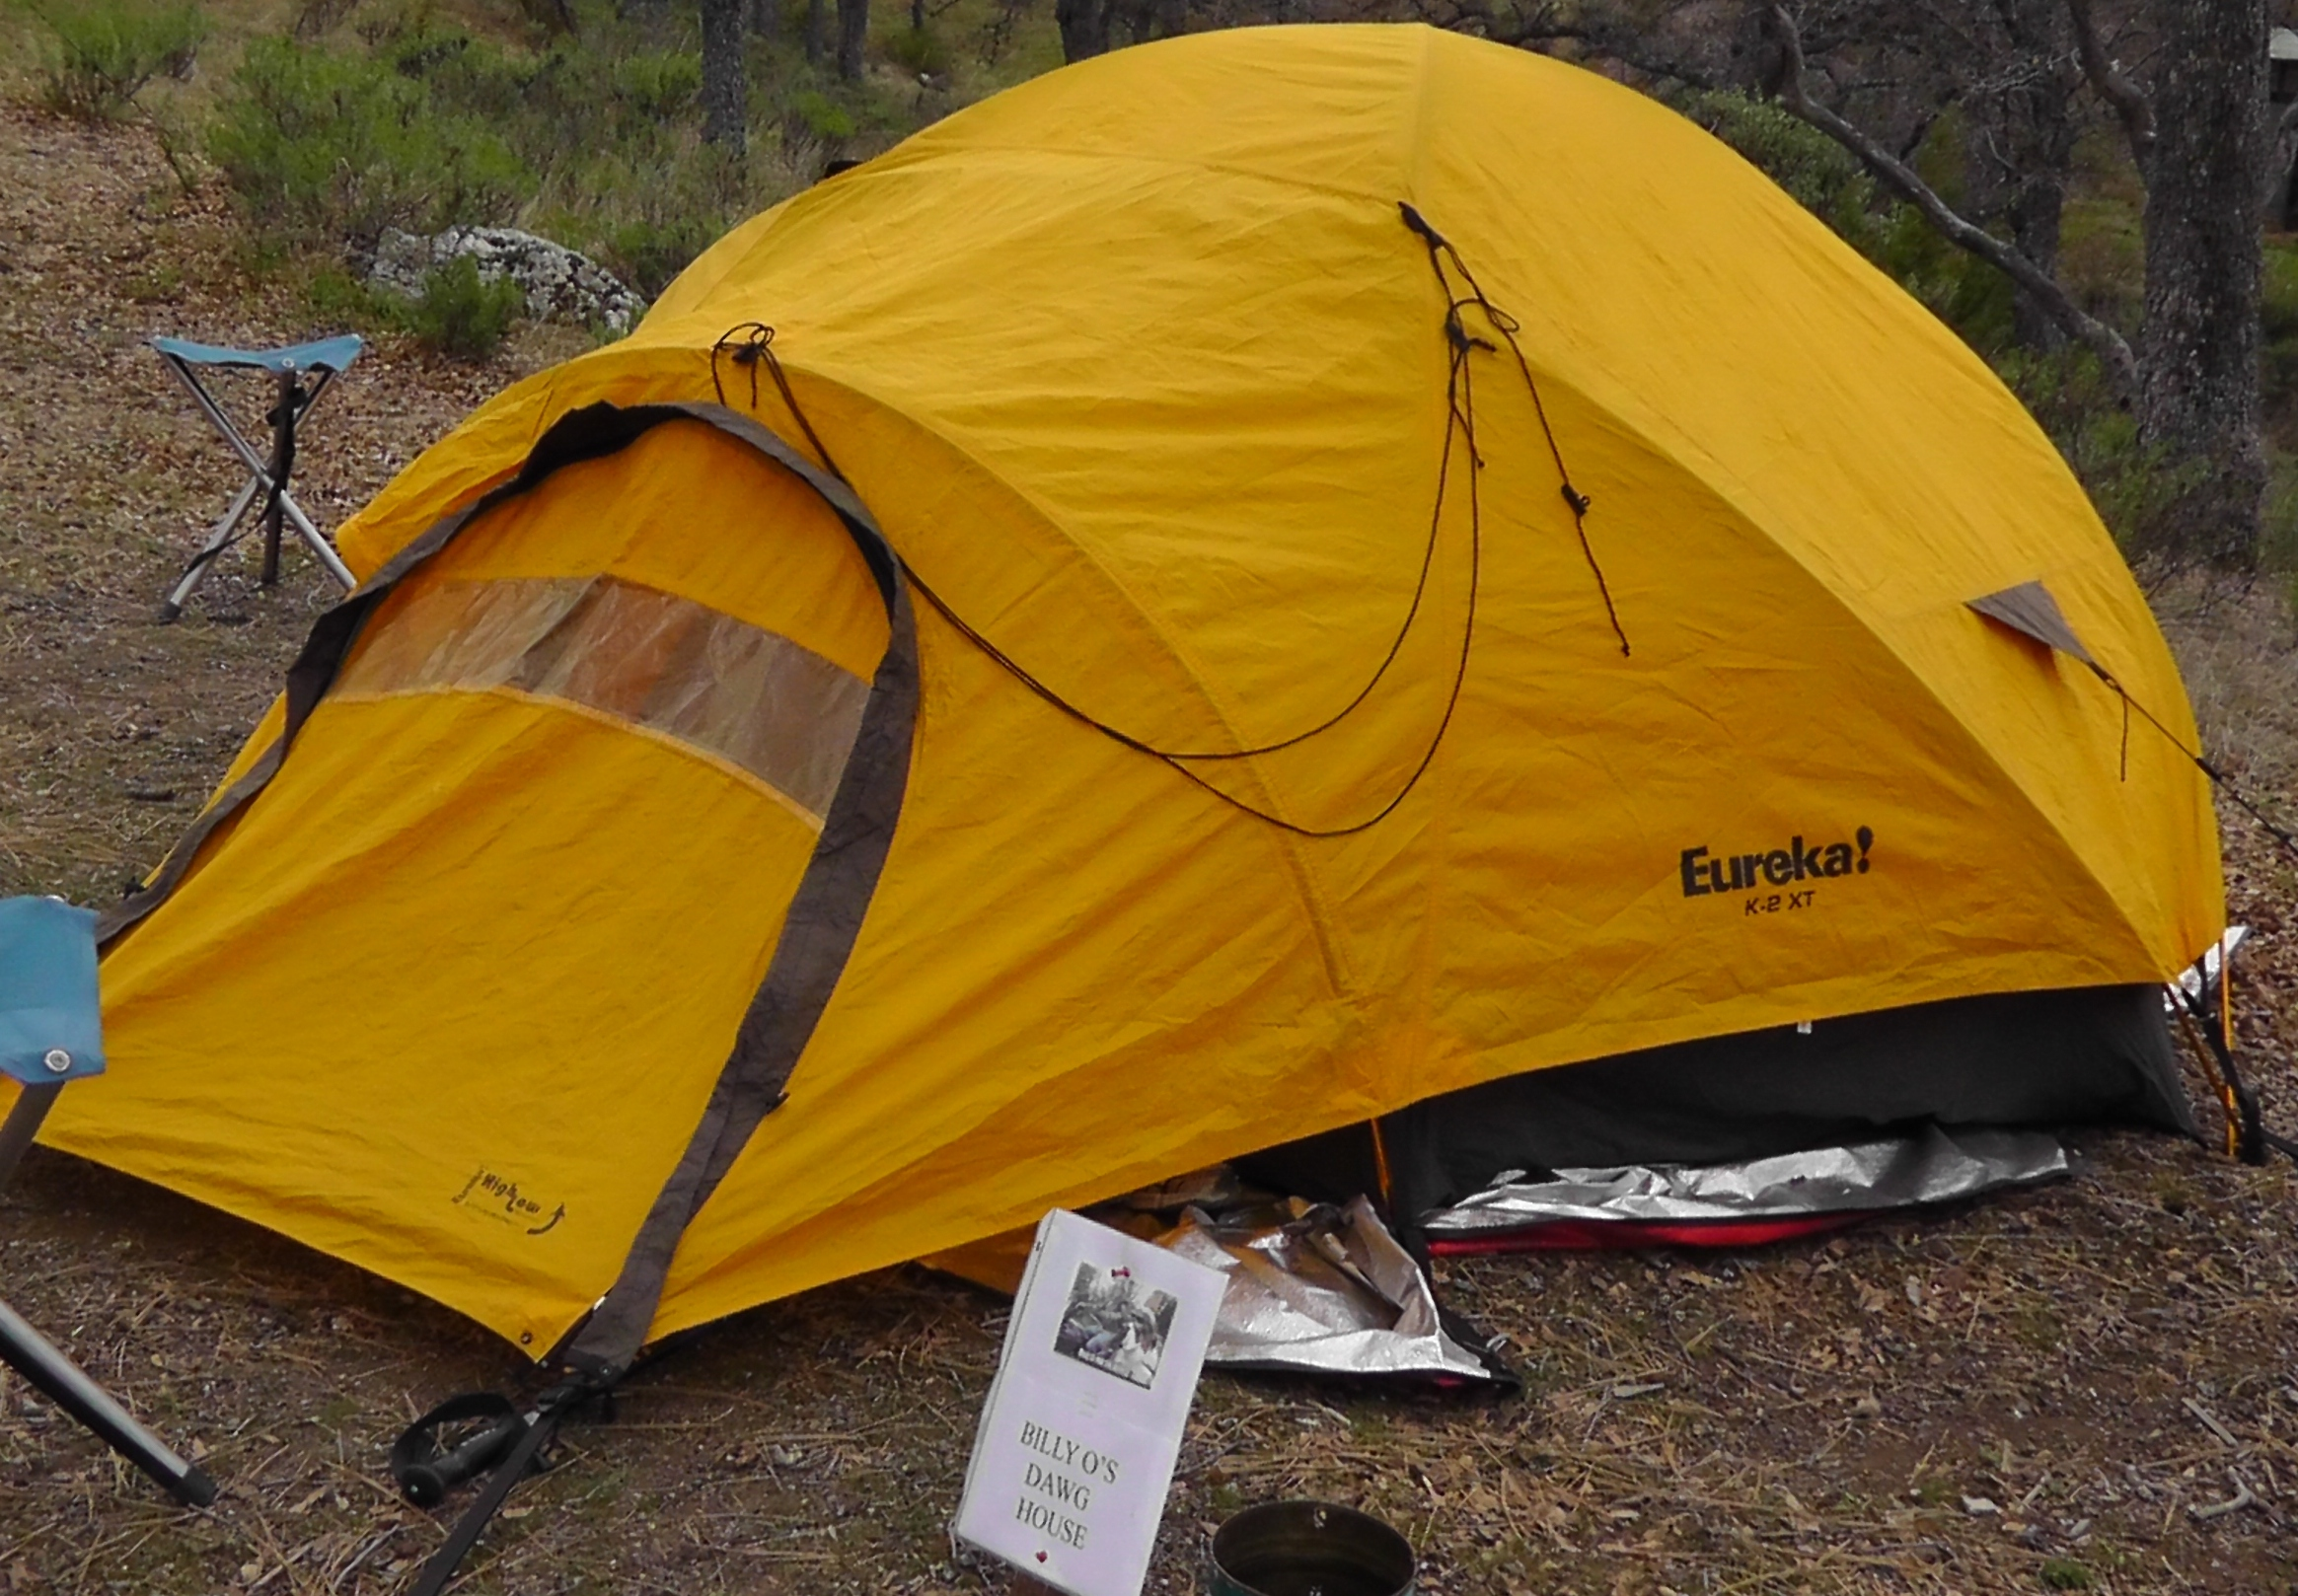 Eureka Tent & How to Pitch a Tent | HowToWilderness.com ™